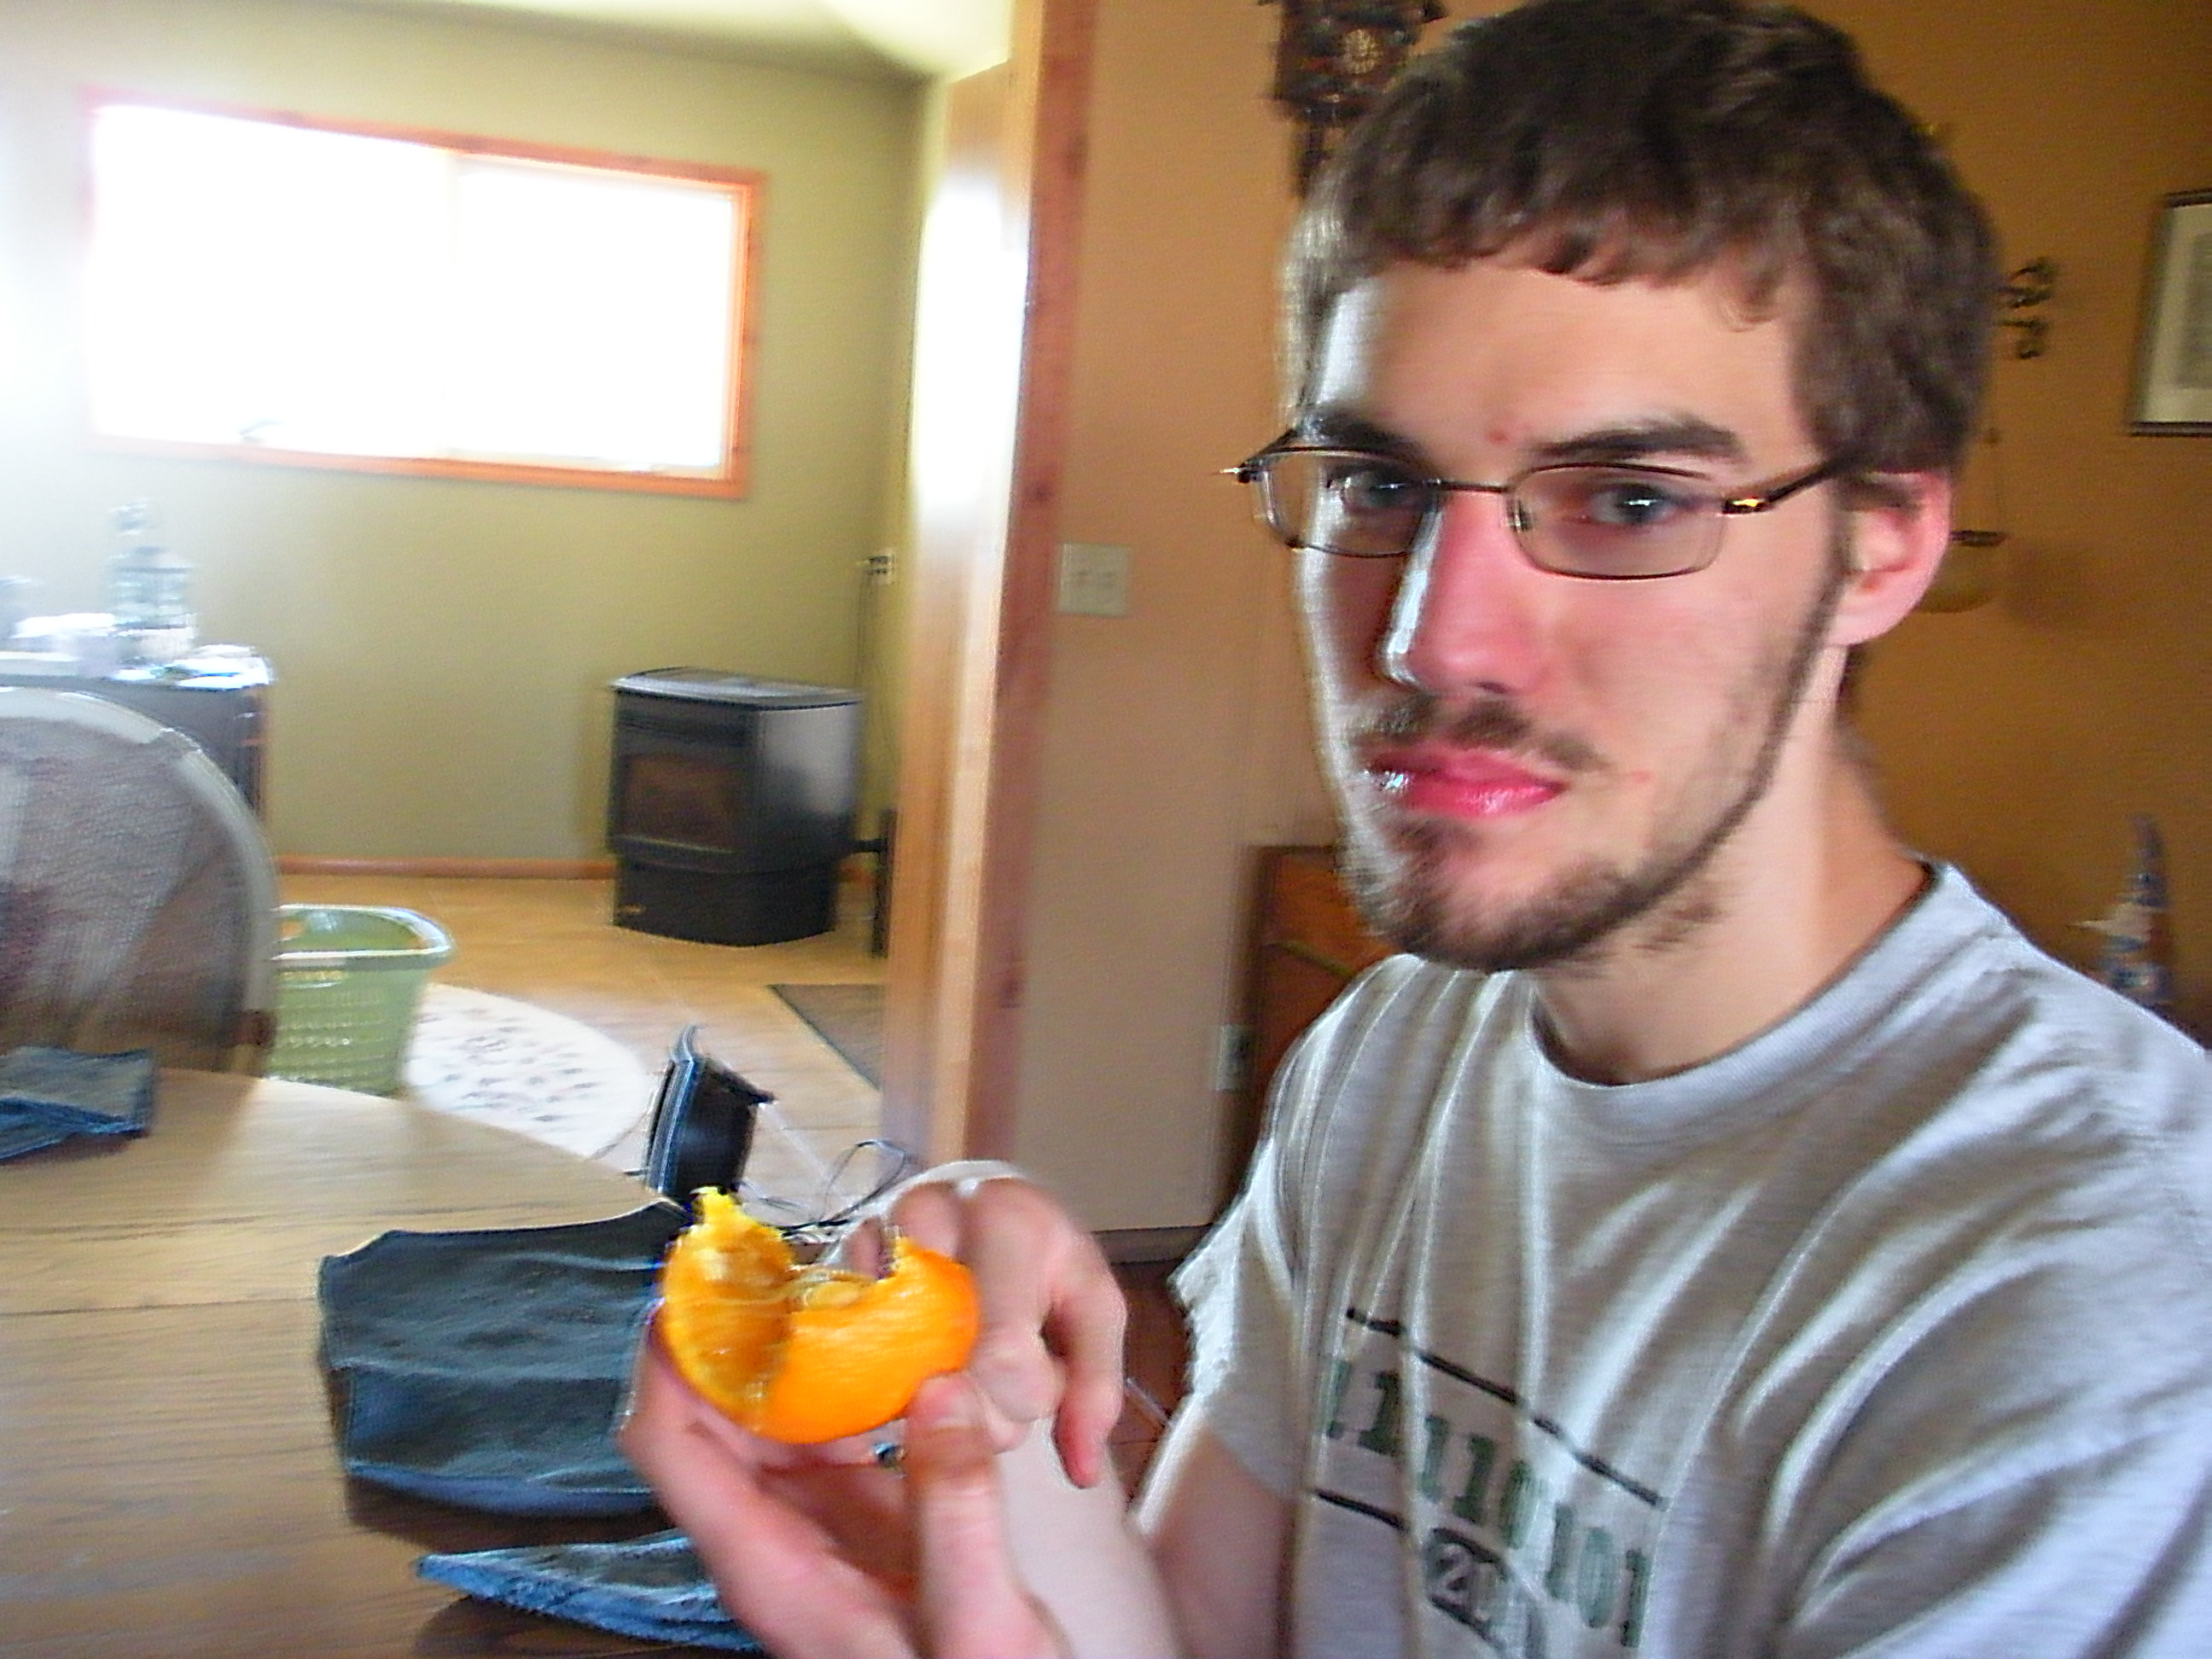 How to eat an orange | Spokalulu